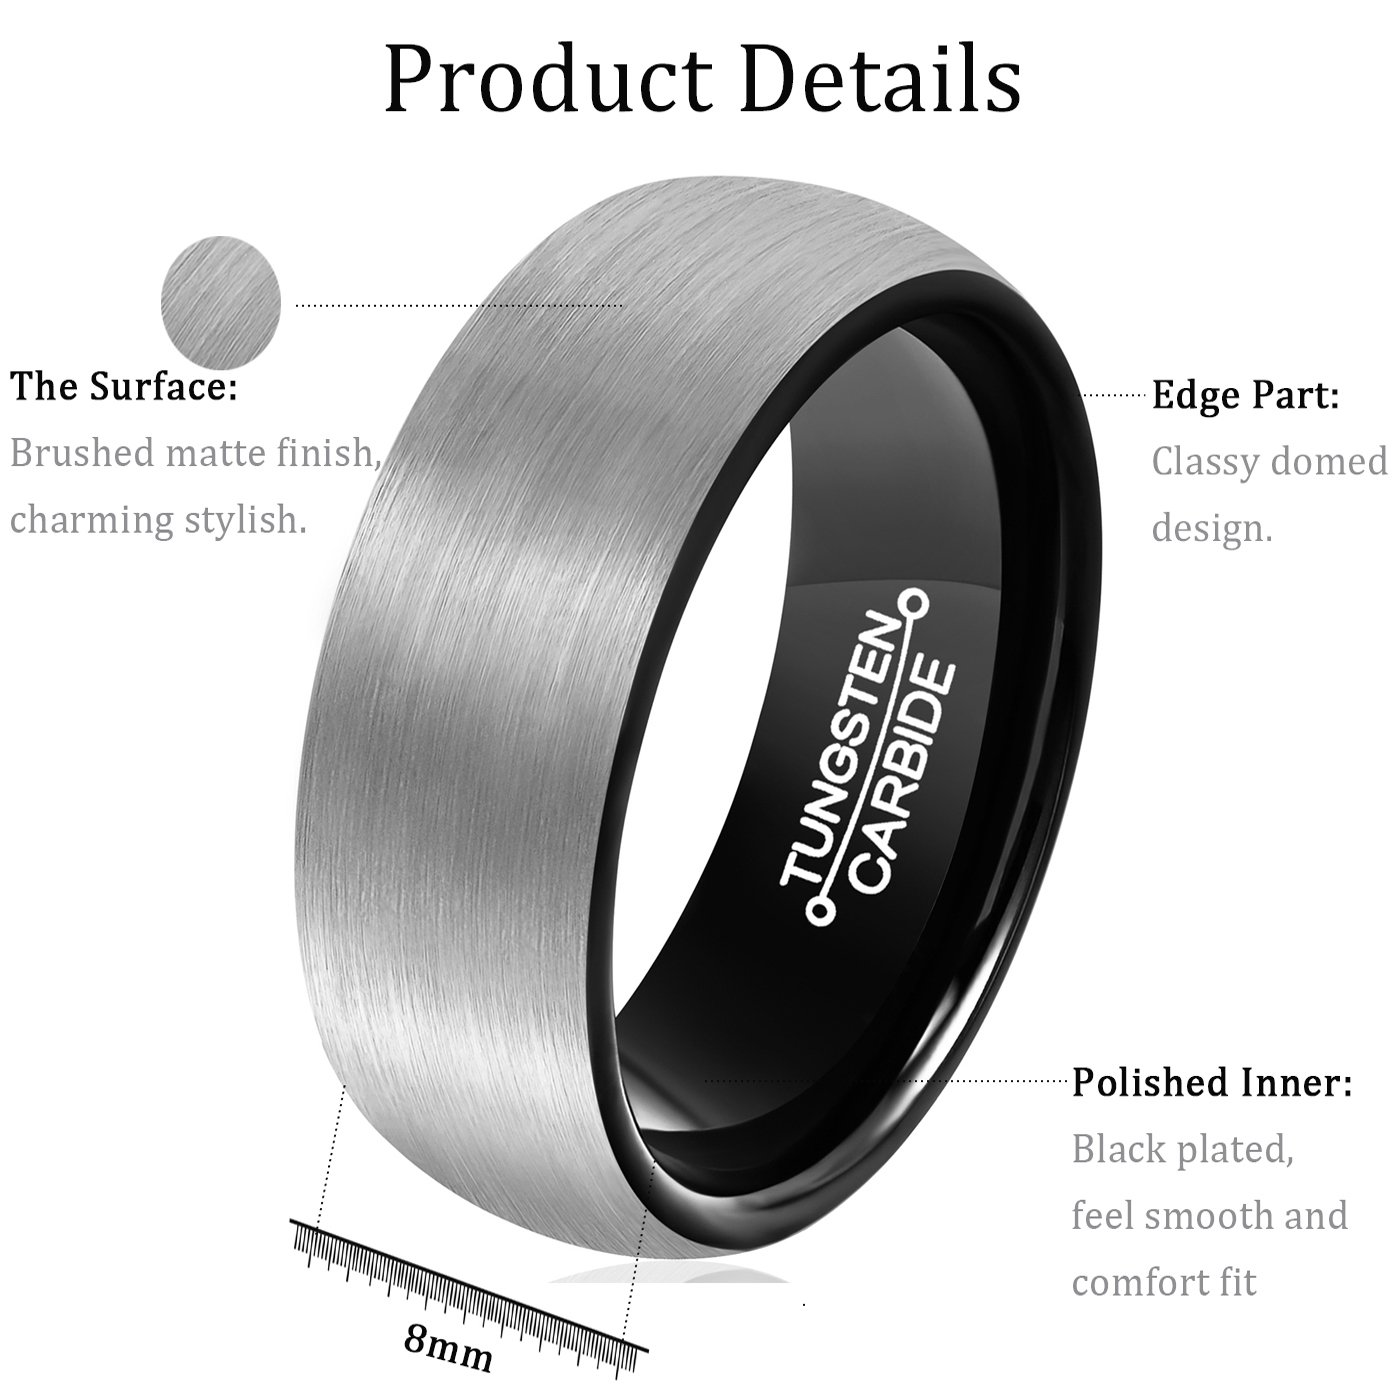 MNH Men's Carbide Tungsten Wedding Band Black 8mm Comfort Fit Brushed Matte Finish Ring Size 9.5 by MNH (Image #5)